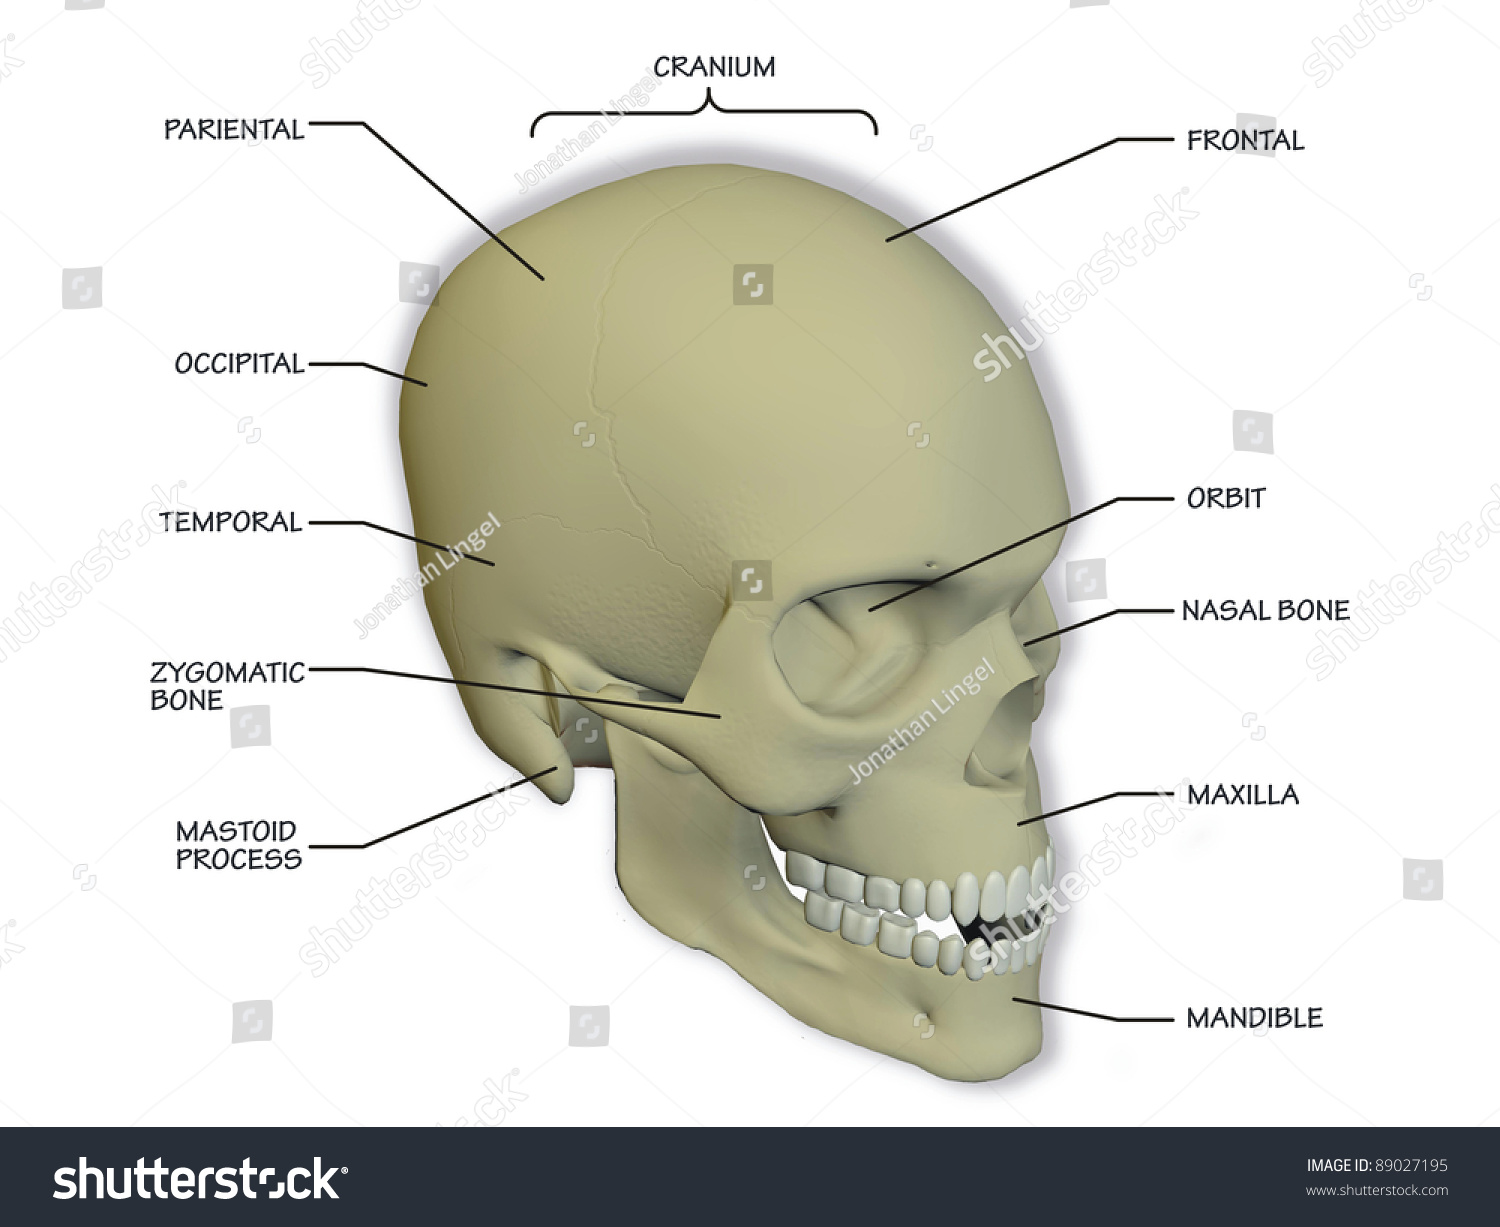 hight resolution of diagram of the human skull